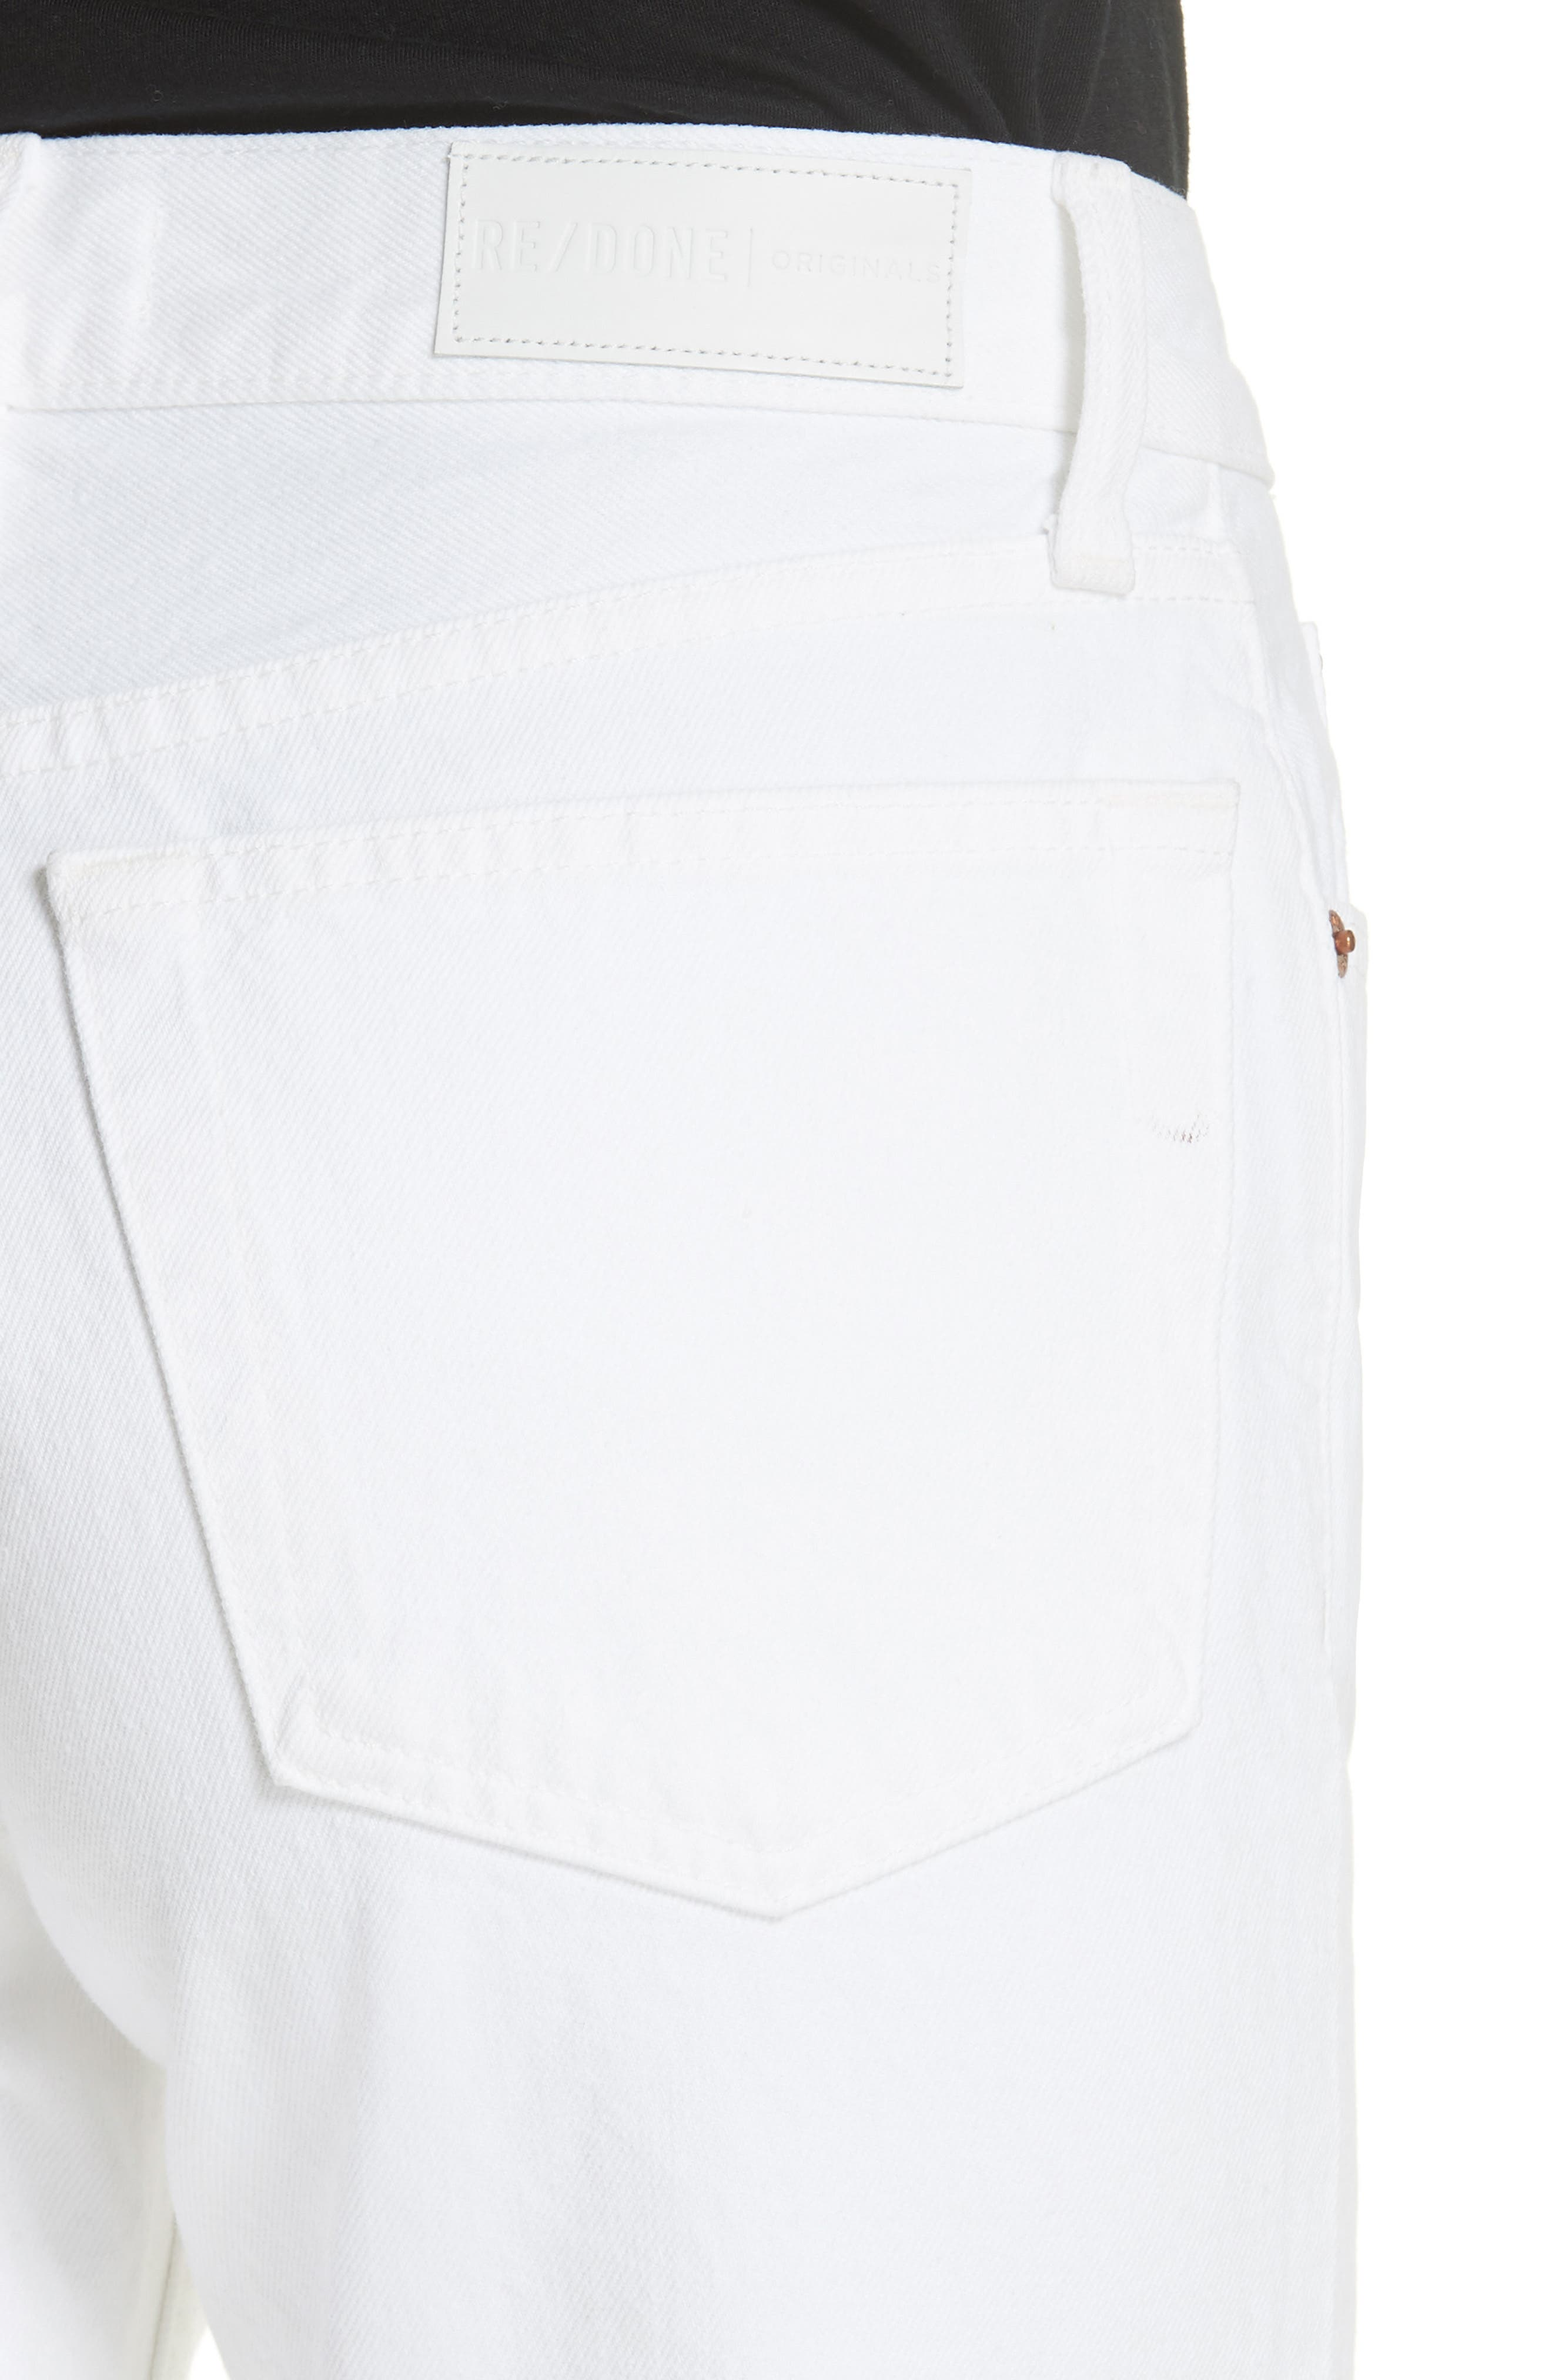 Originals High Waist Stove Pipe Jeans,                             Alternate thumbnail 4, color,                             White